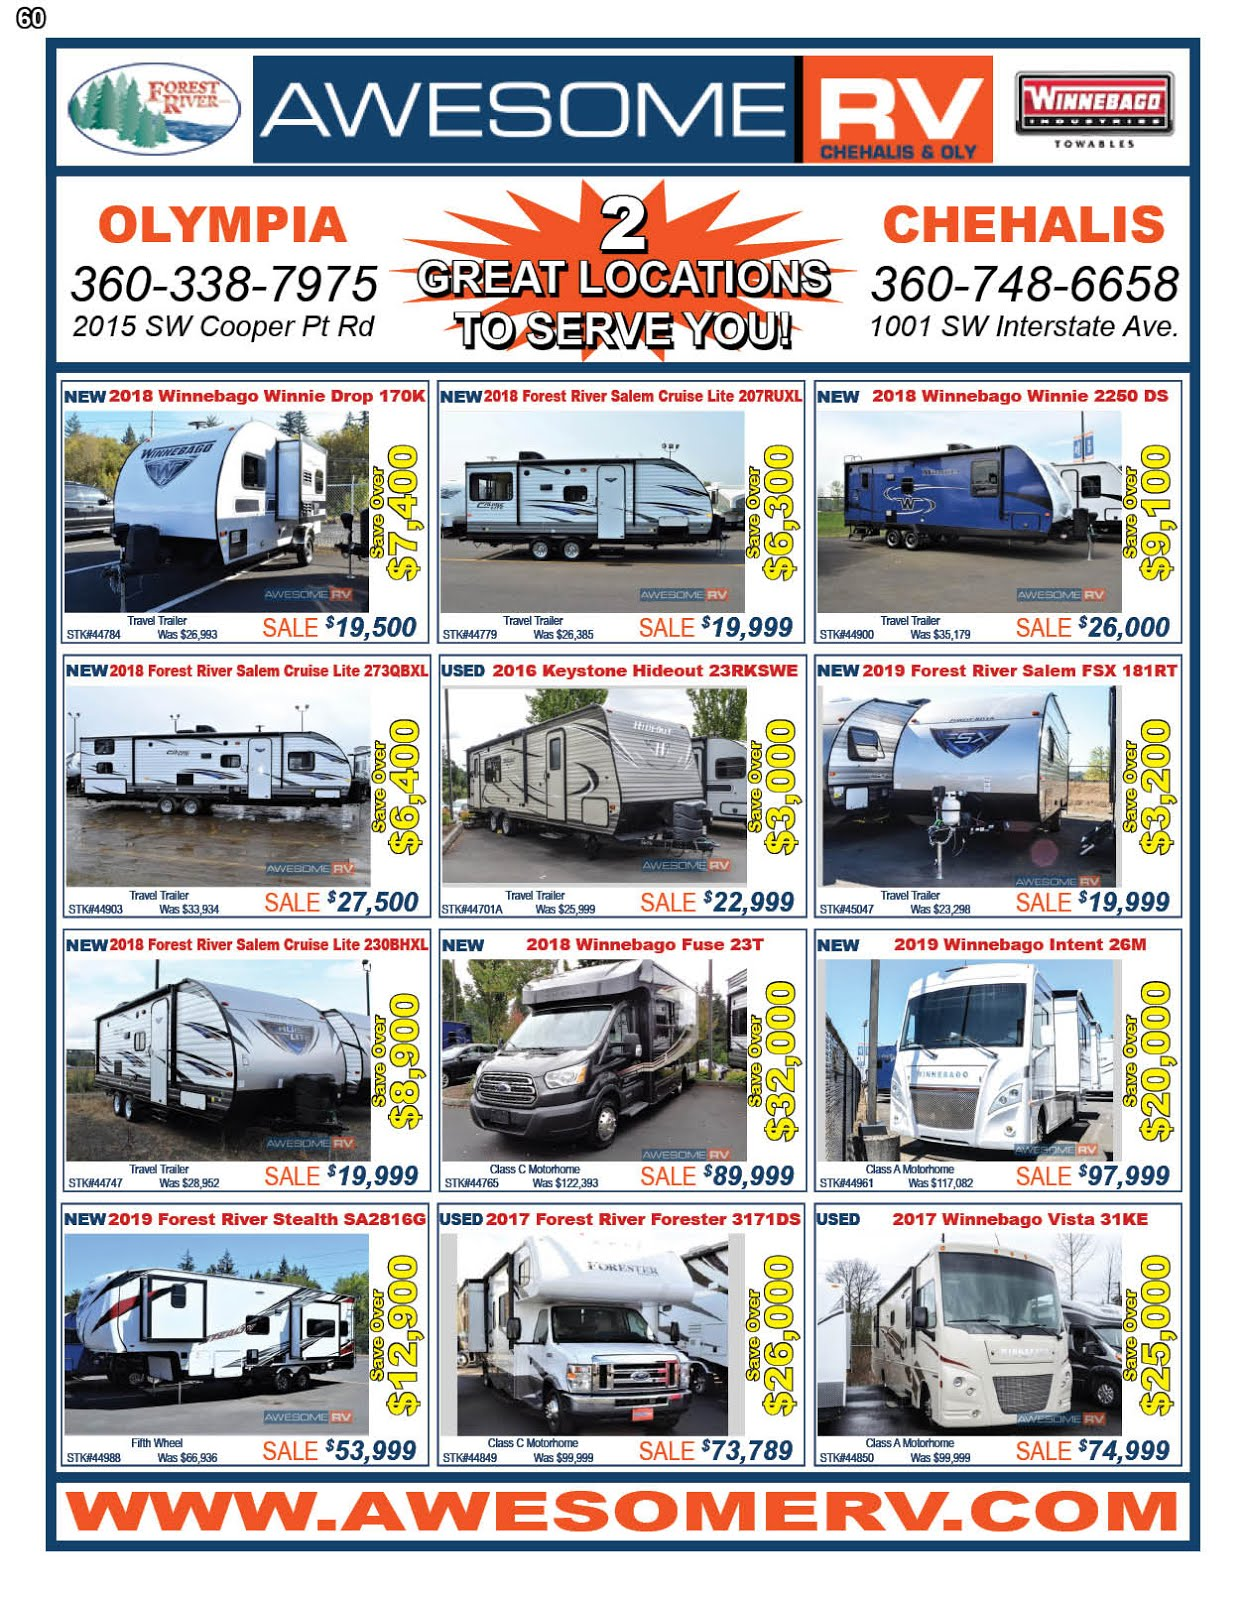 Awesome RV  Olympia & Chehalis